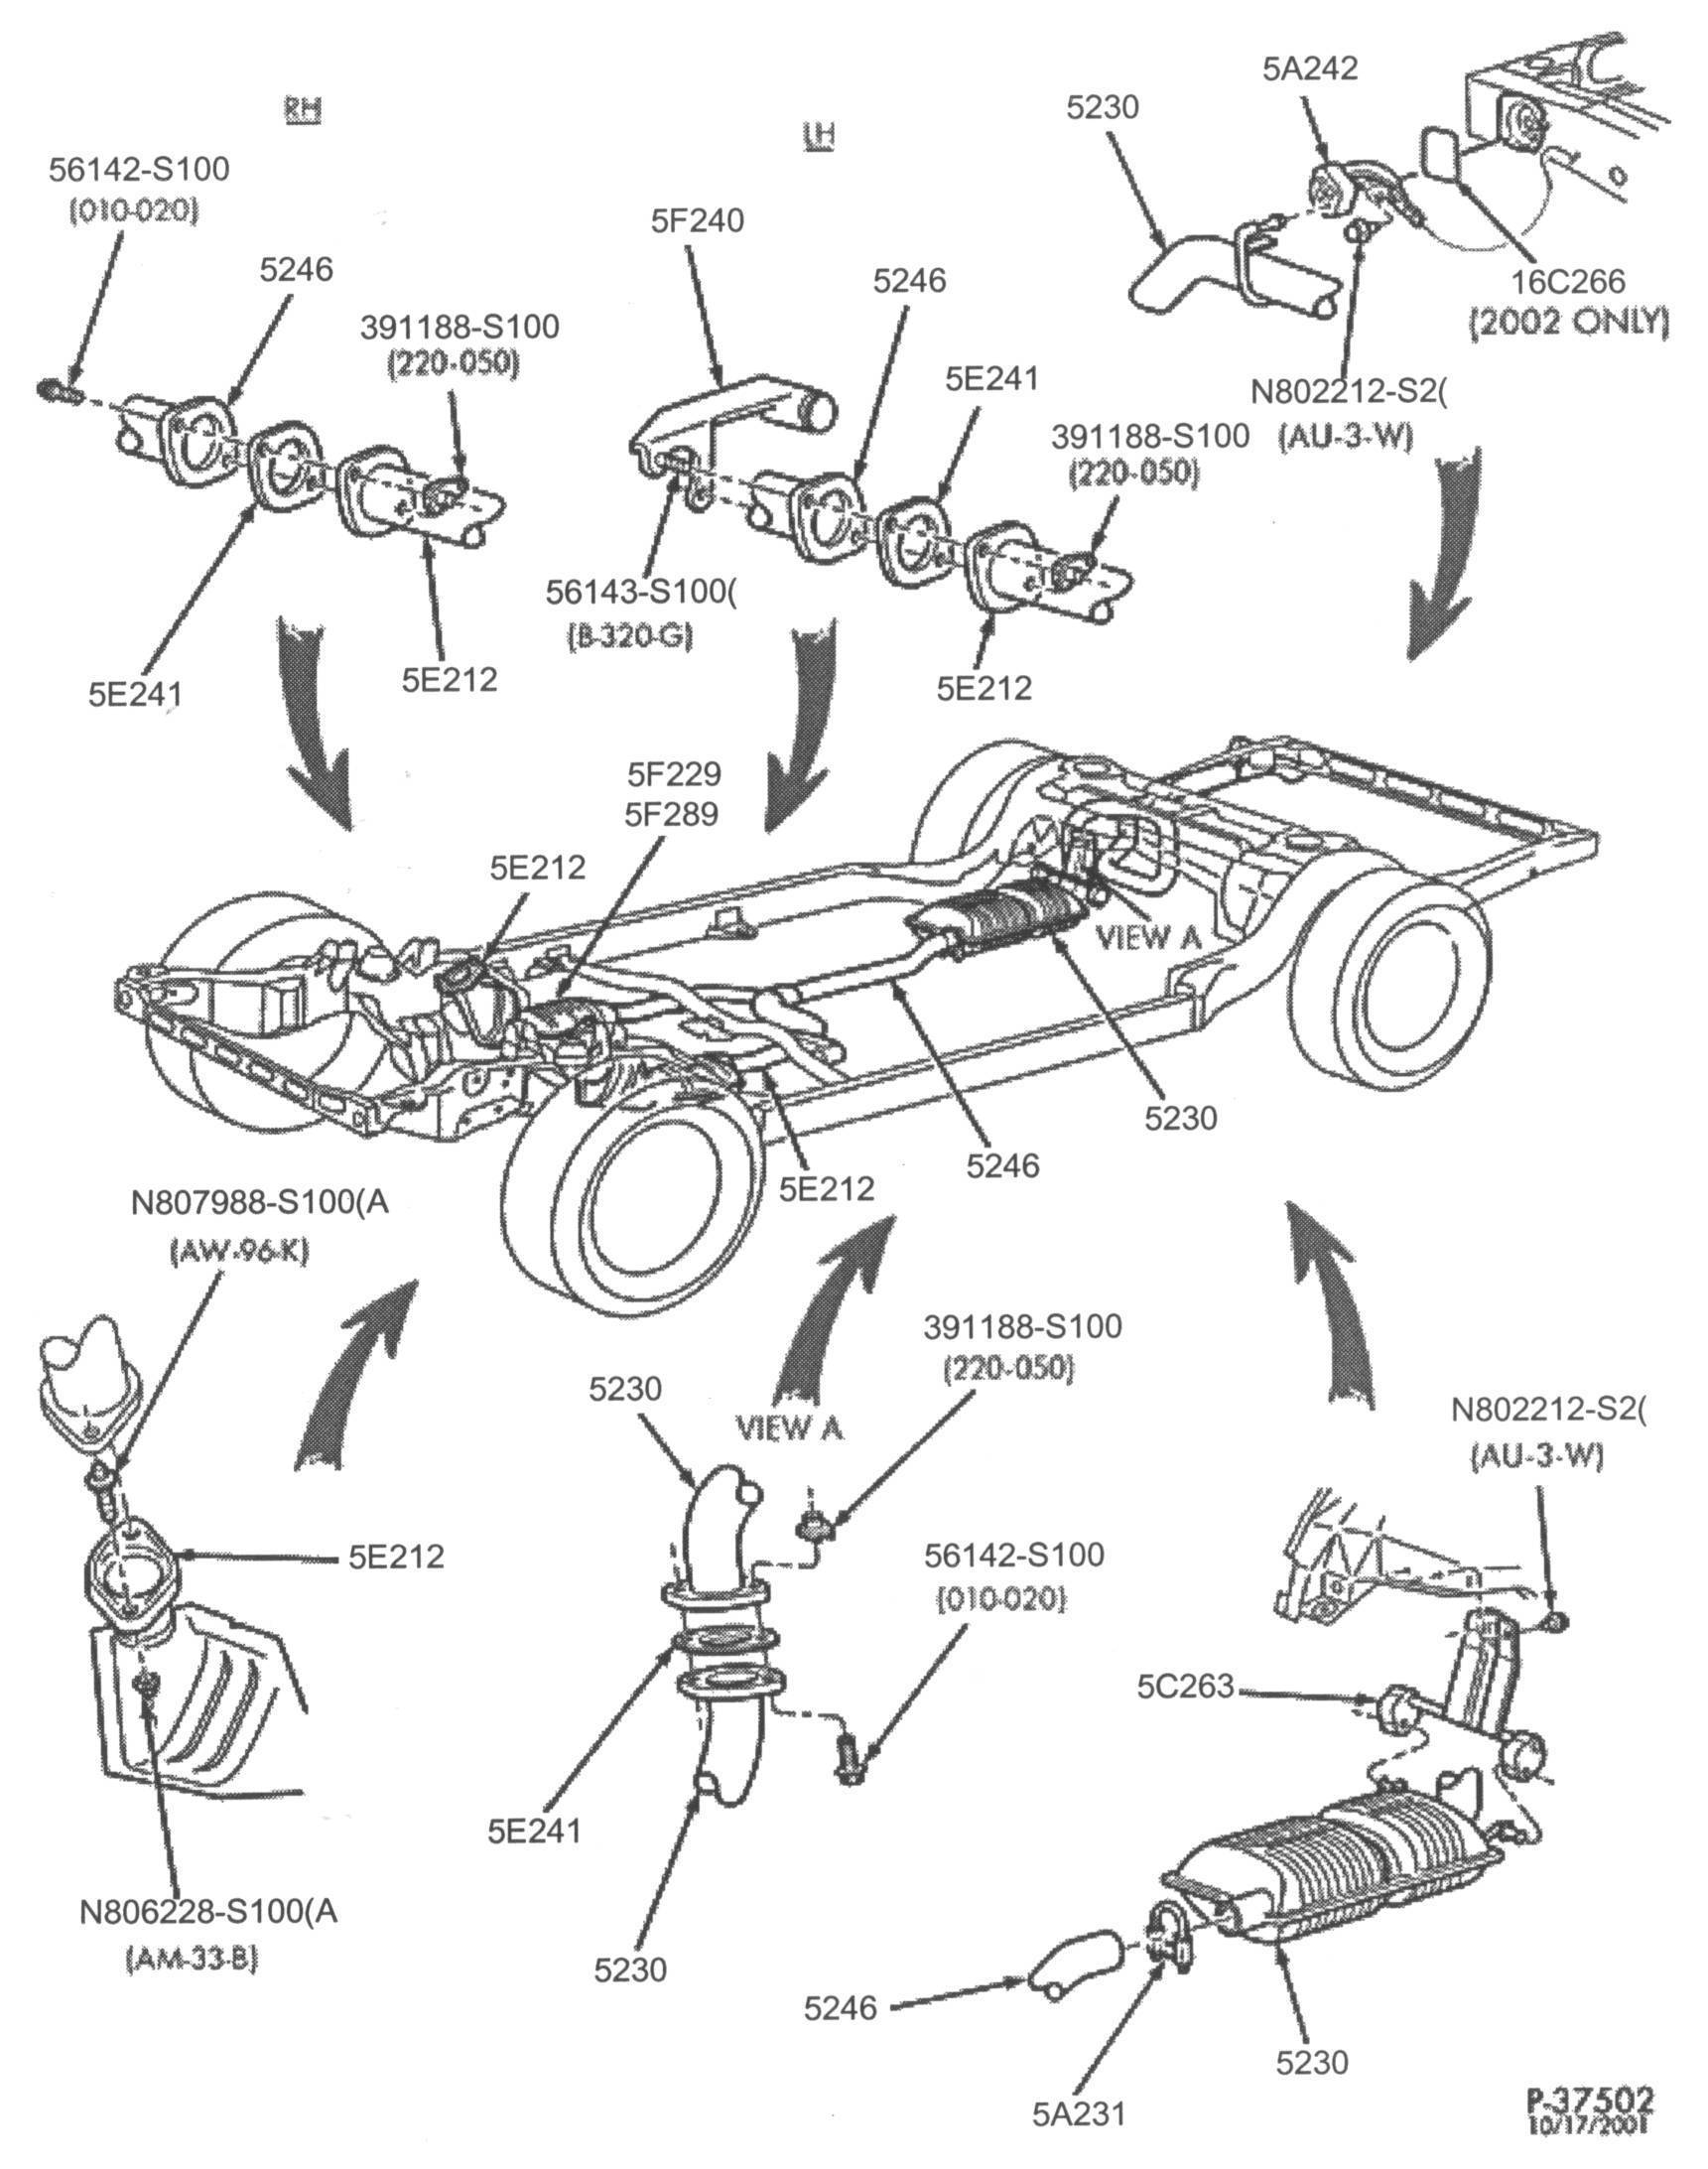 2002 ford exhaust diagram  ford  auto parts catalog and